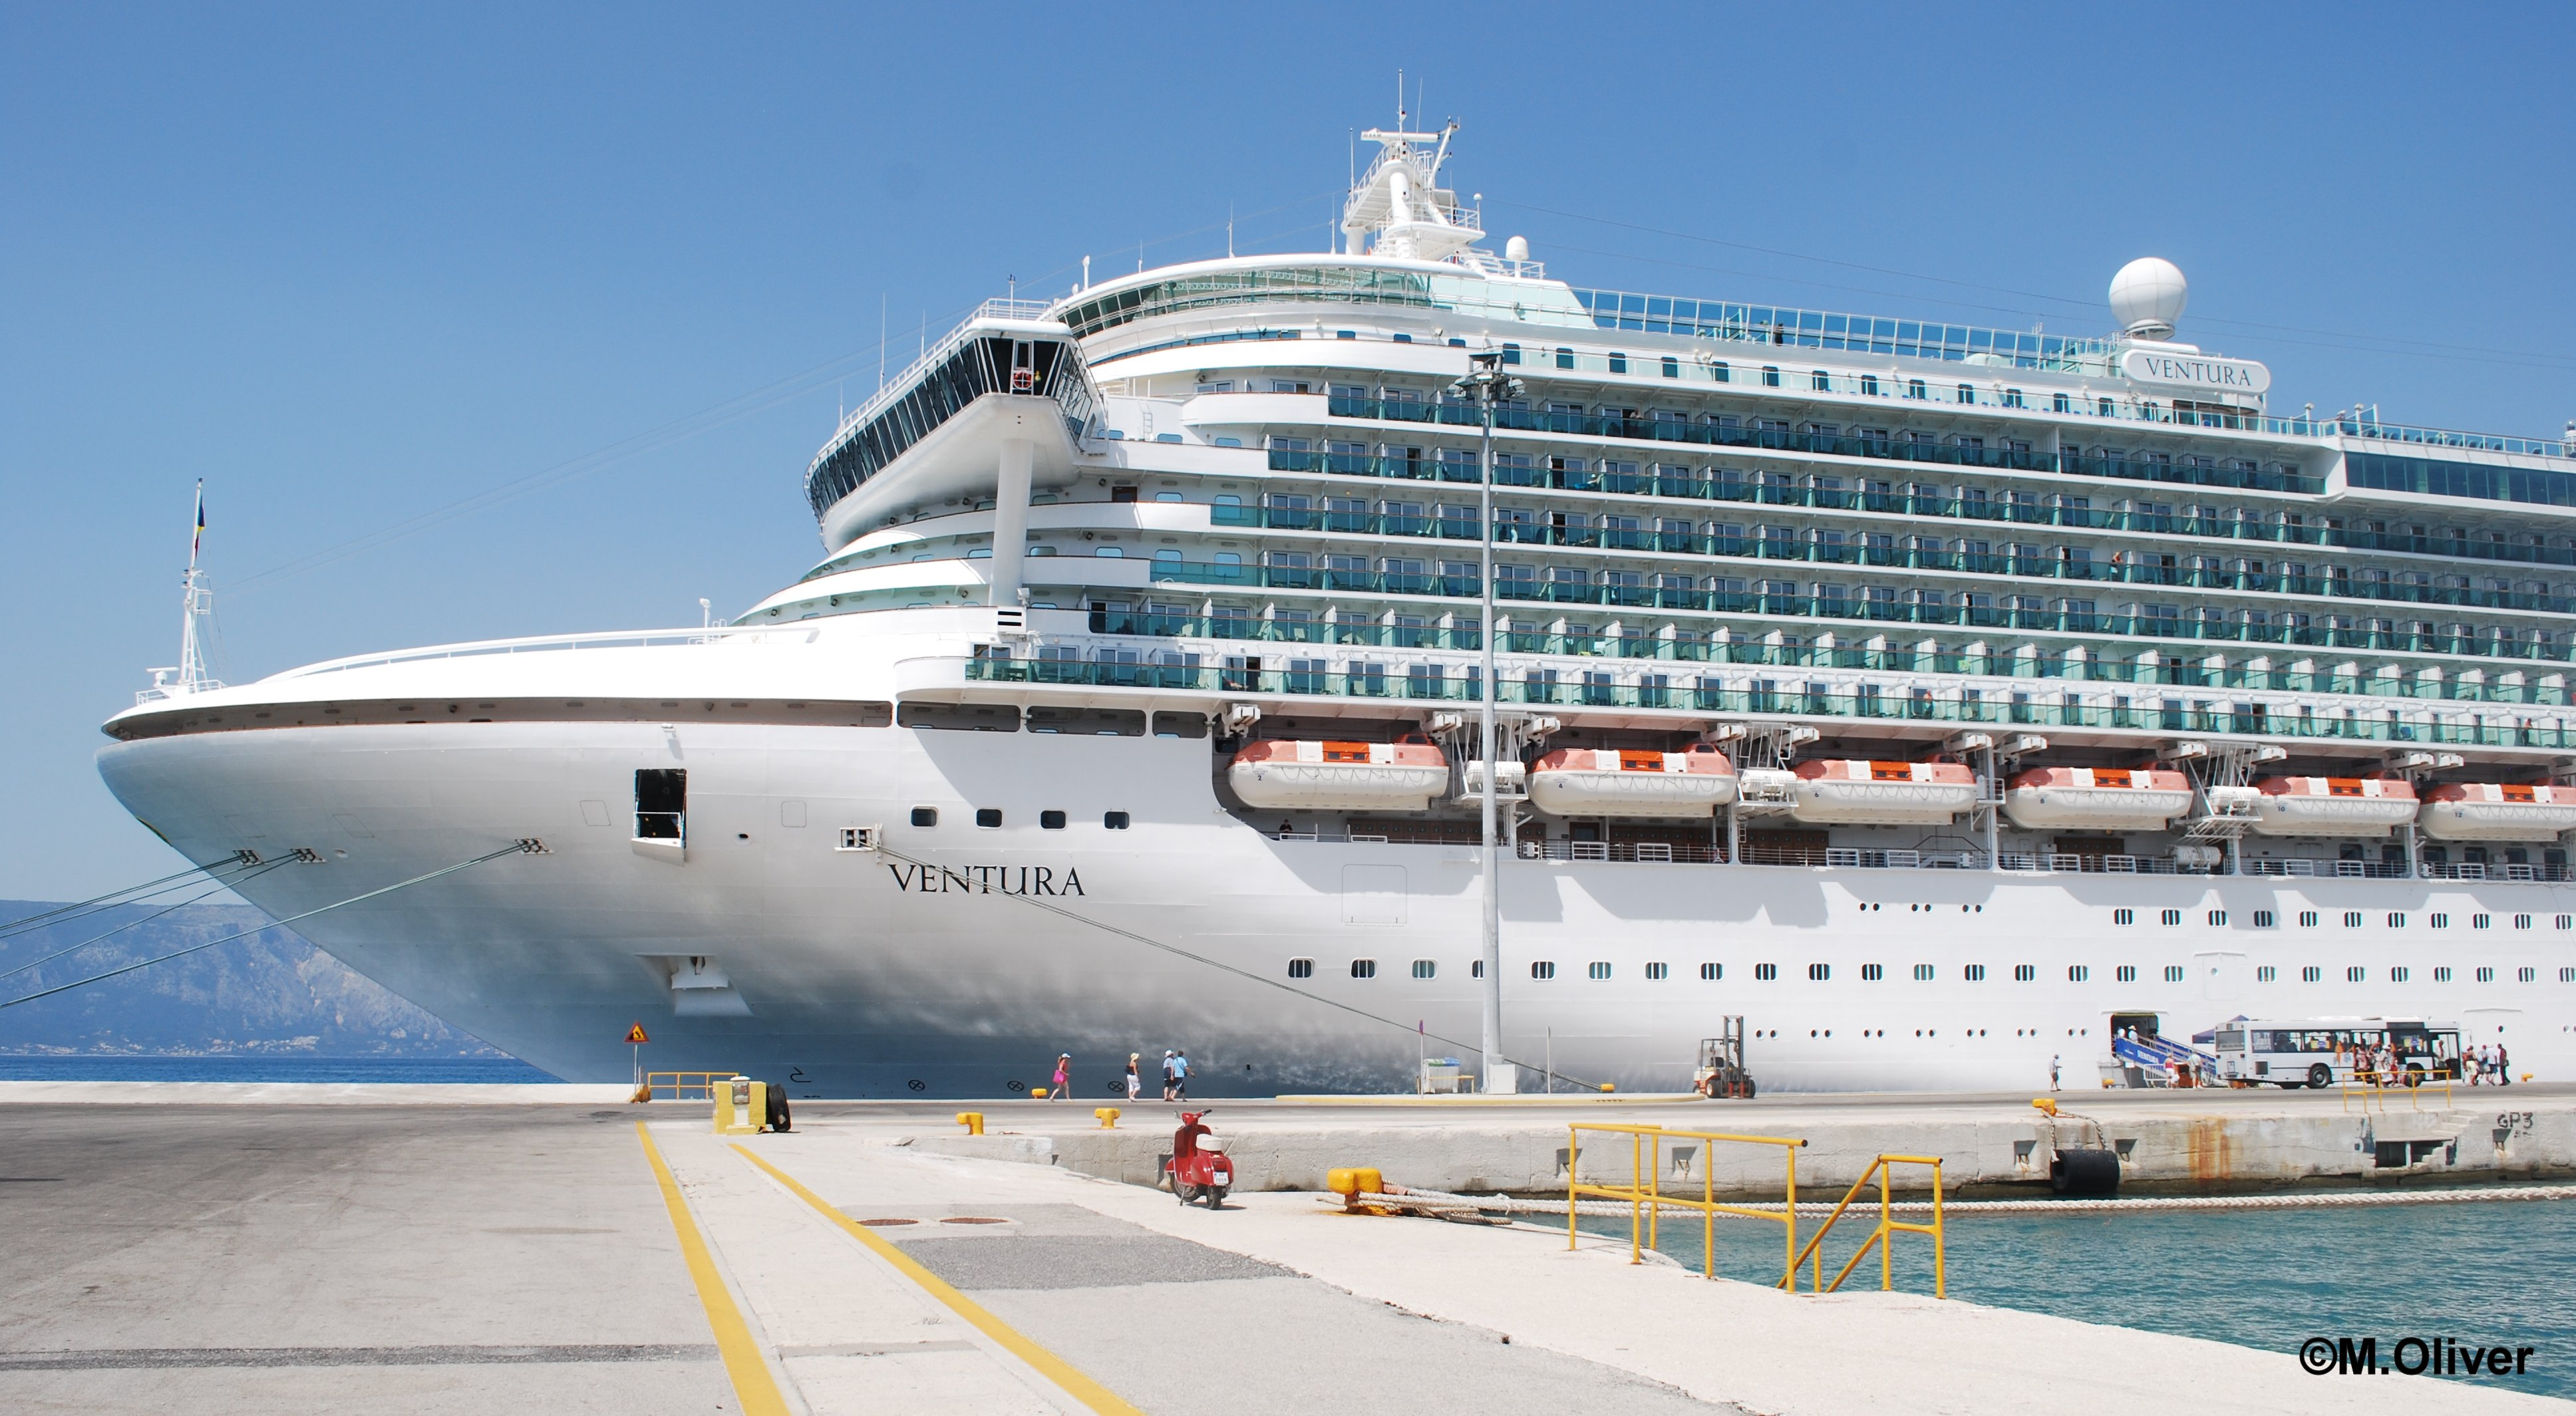 POs Ventura Ship Review Malcolm Olivers WaterWorld - Guest entertainers wanted for cruise ships